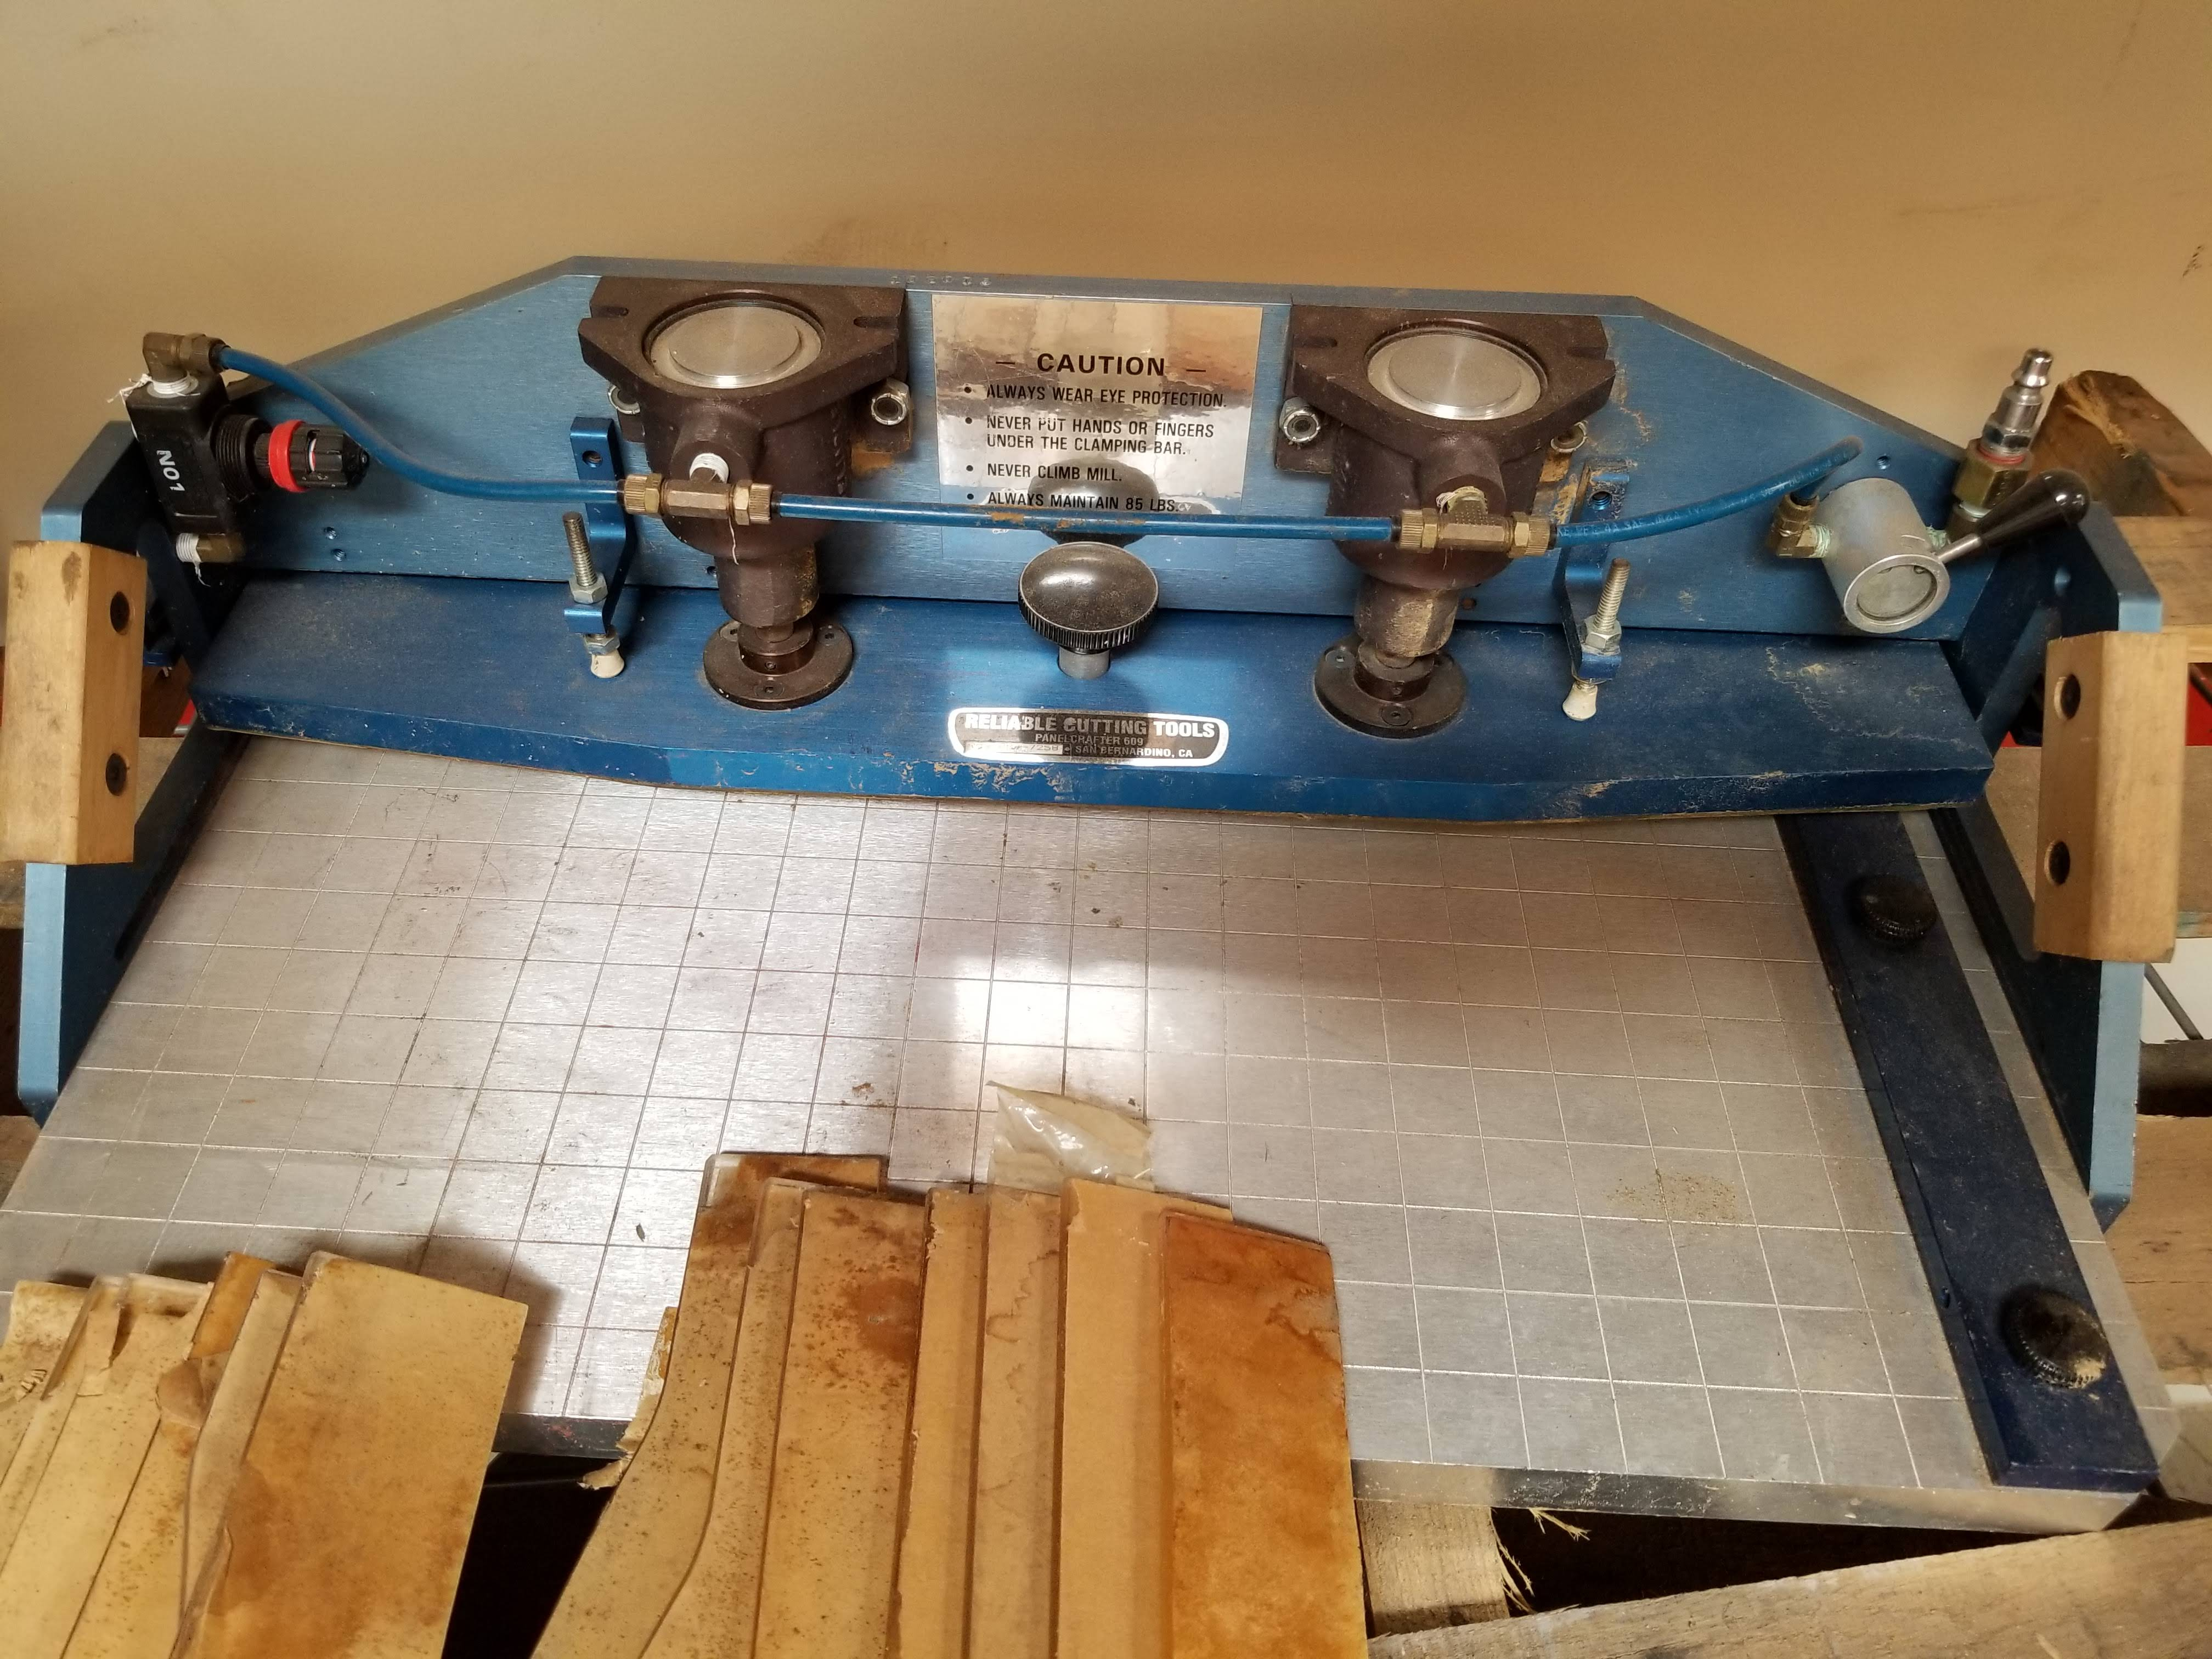 Reliable Cutting Tools Panelcrafter Model 609 with Templates - Image 2 of 4